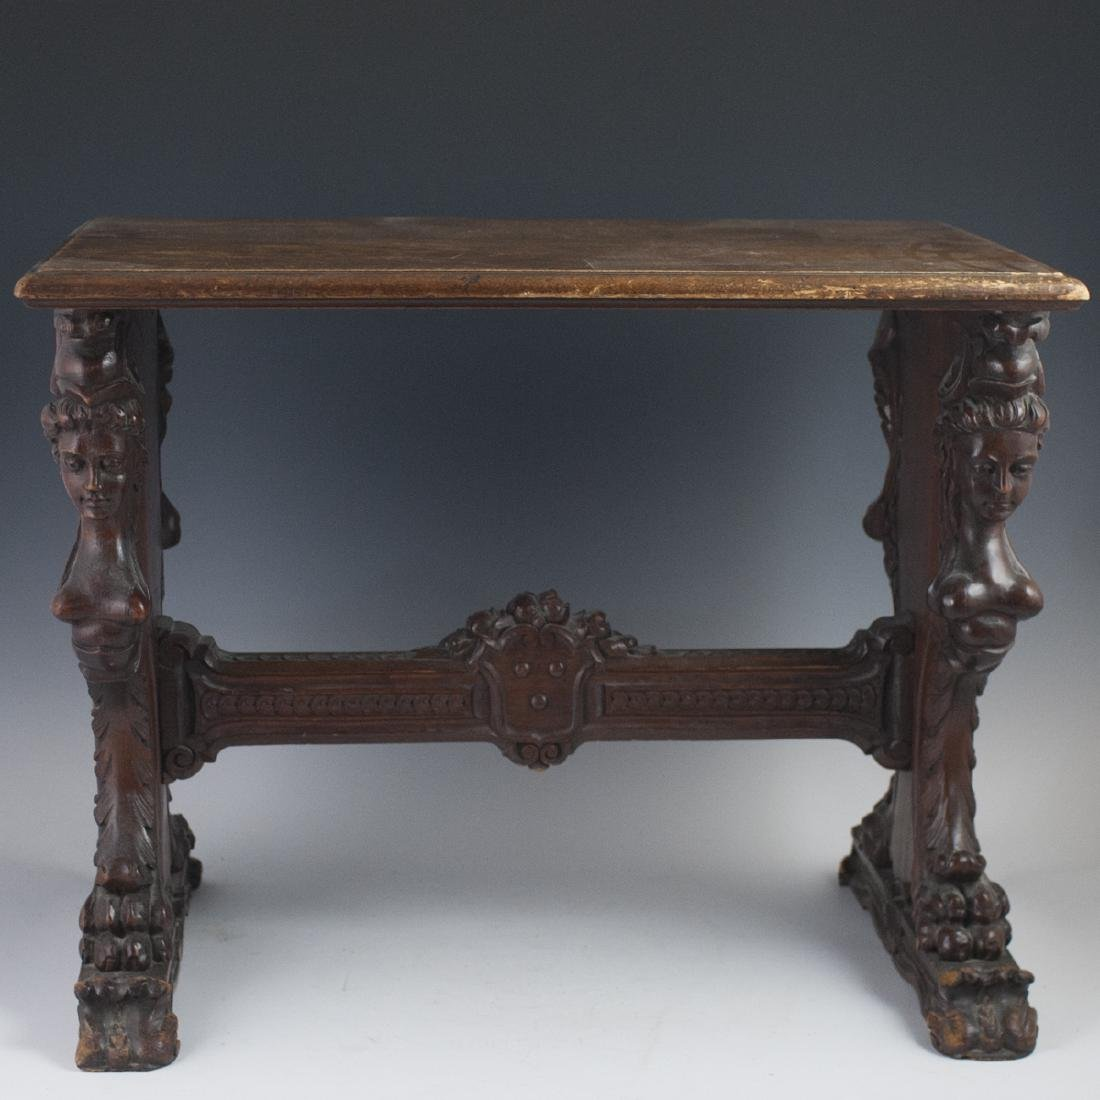 French Renaissance Revival Wooden Side Table